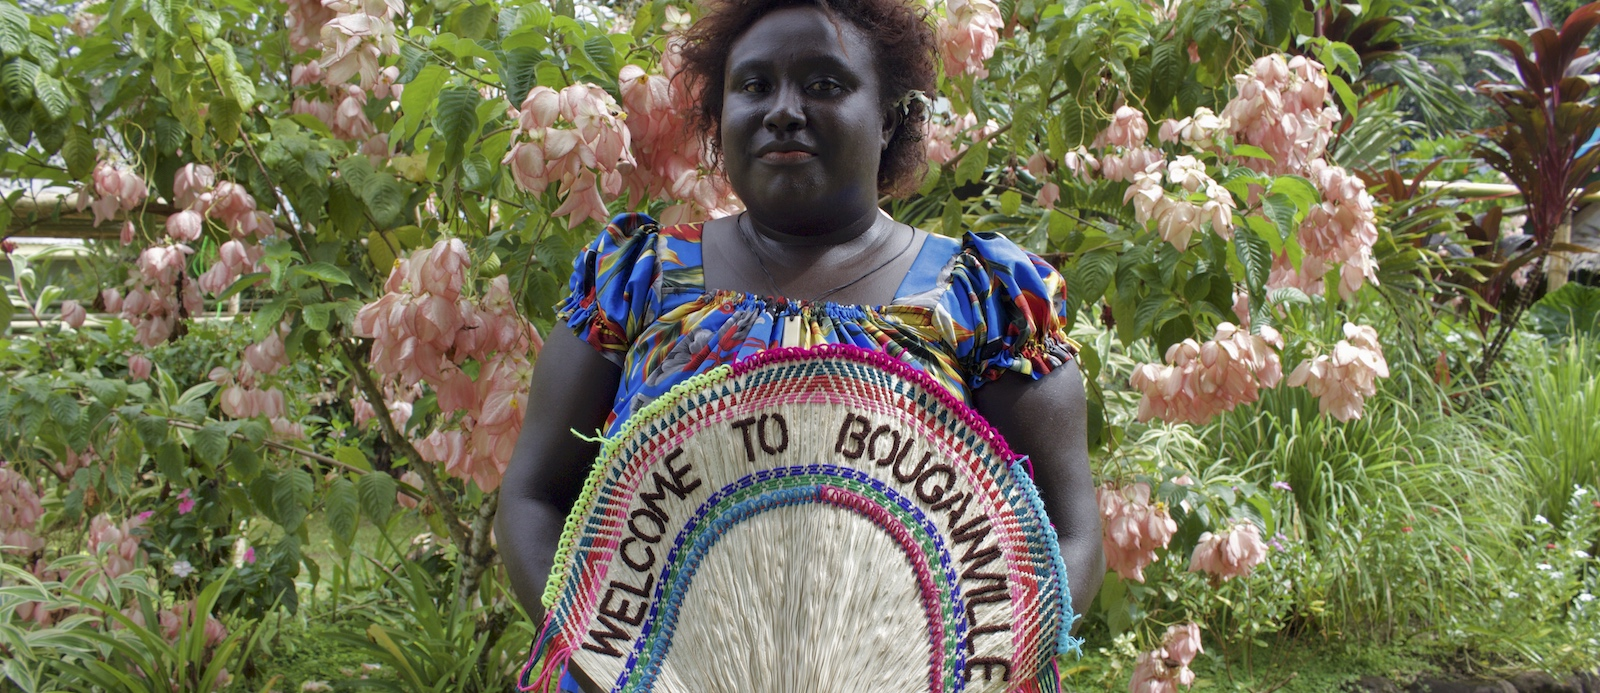 Women in Bougainville occupy an honoured place in the post-conflict order. (Photo: UNDP Papua New Guinea/ Flickr)